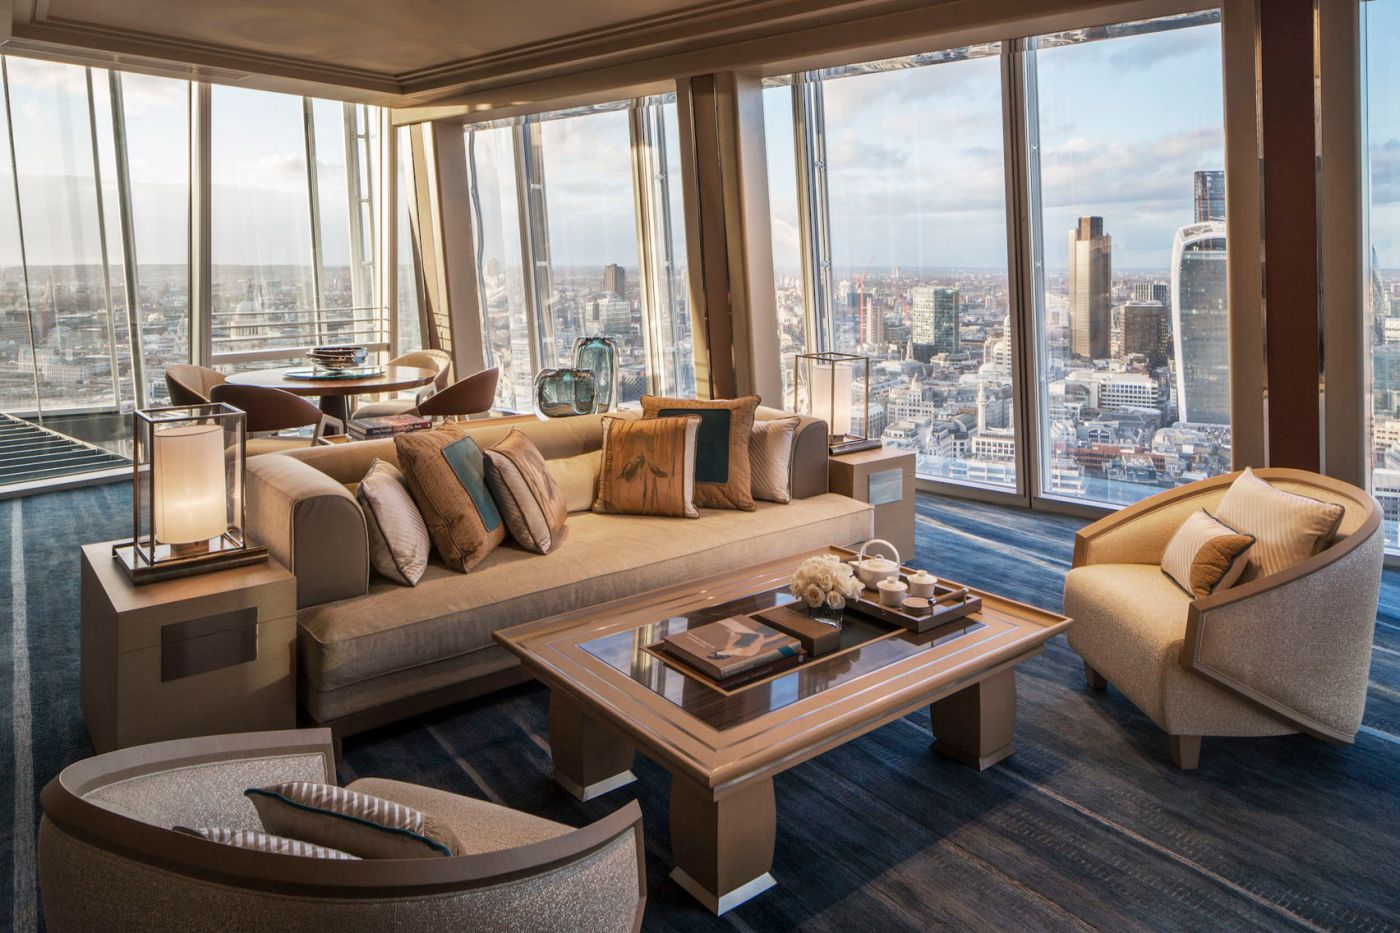 A luxury suite in the Shard